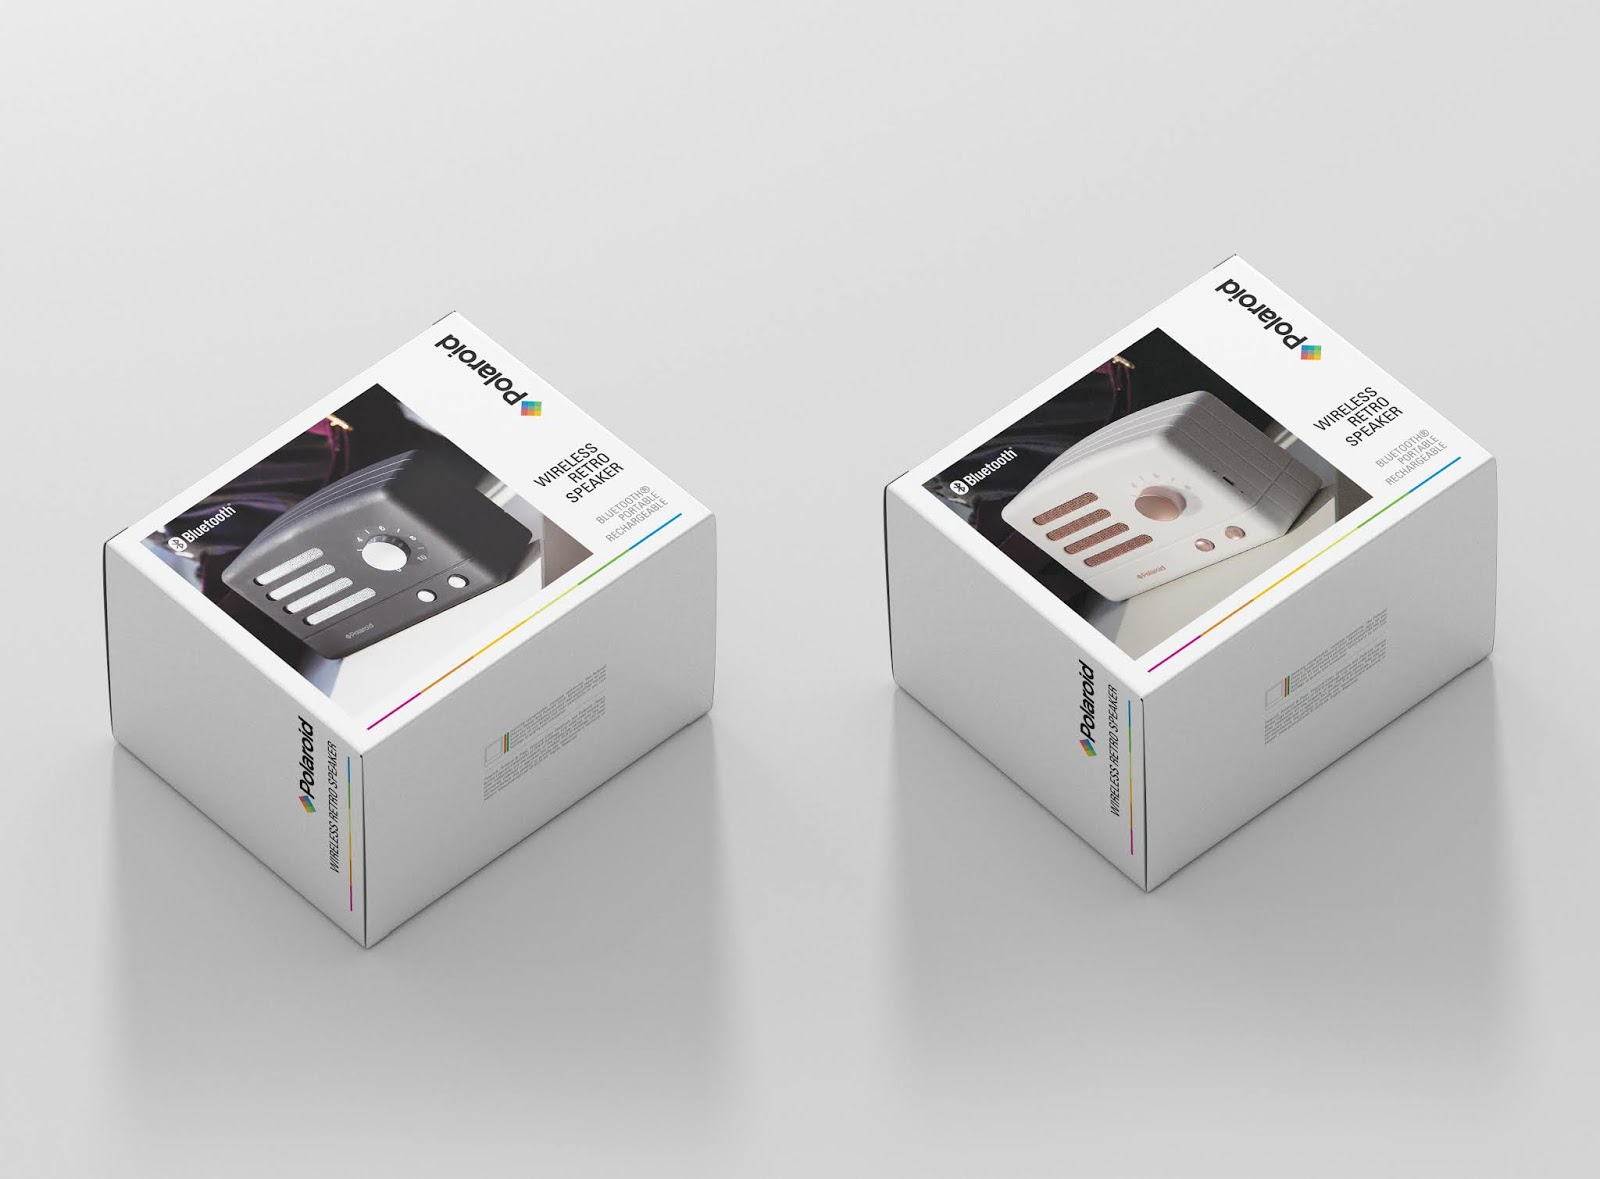 0fc32743e7 This year, I decided to base our packaging on the Classic Polaroid Border;  the iconic shape that everyone knows. The idea was to sell the products via  ...